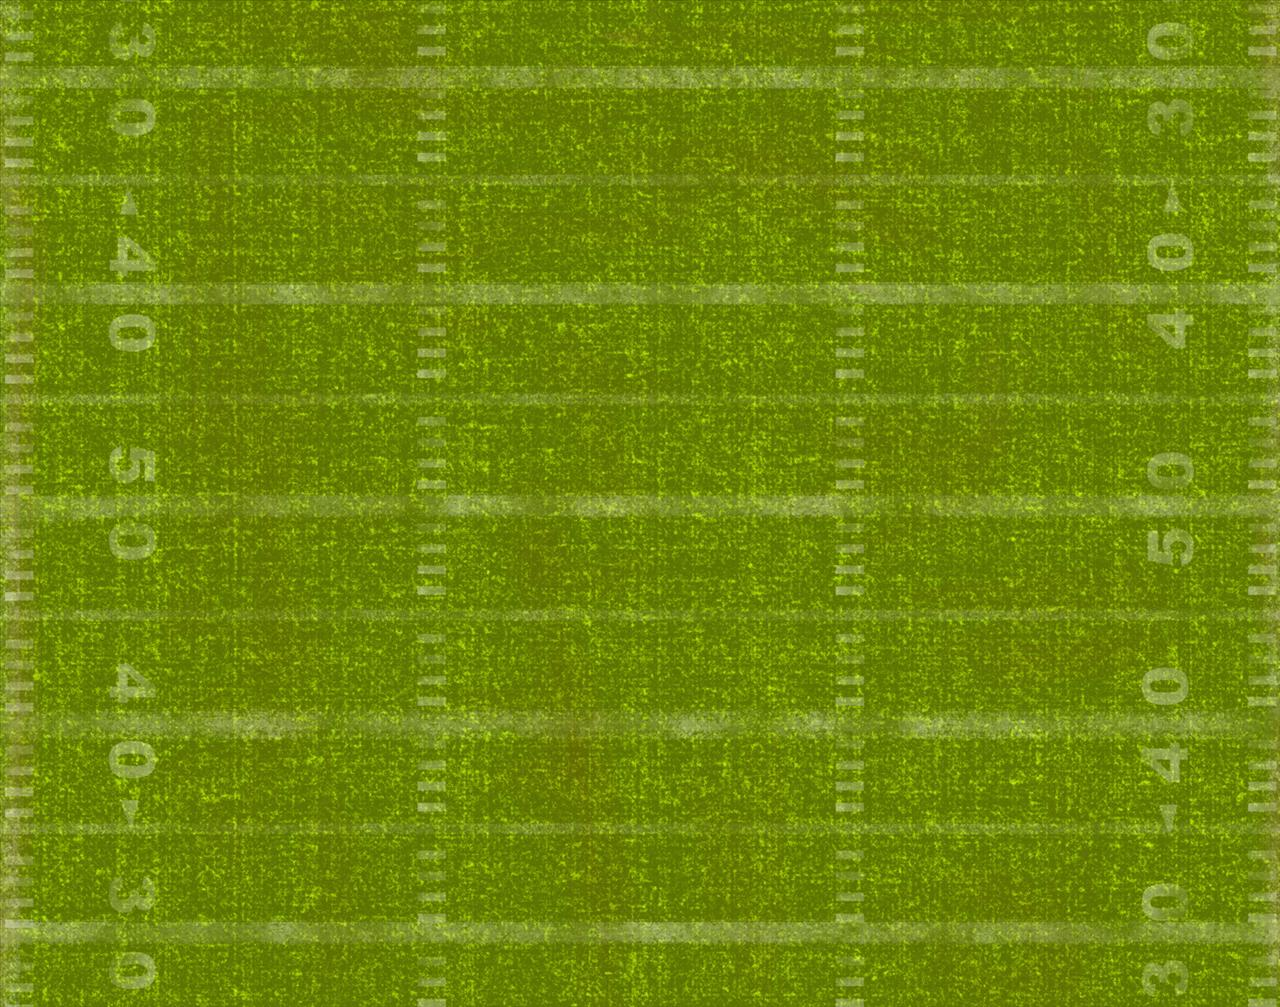 Football Field Background Download HD Wallpapers 1280x1007